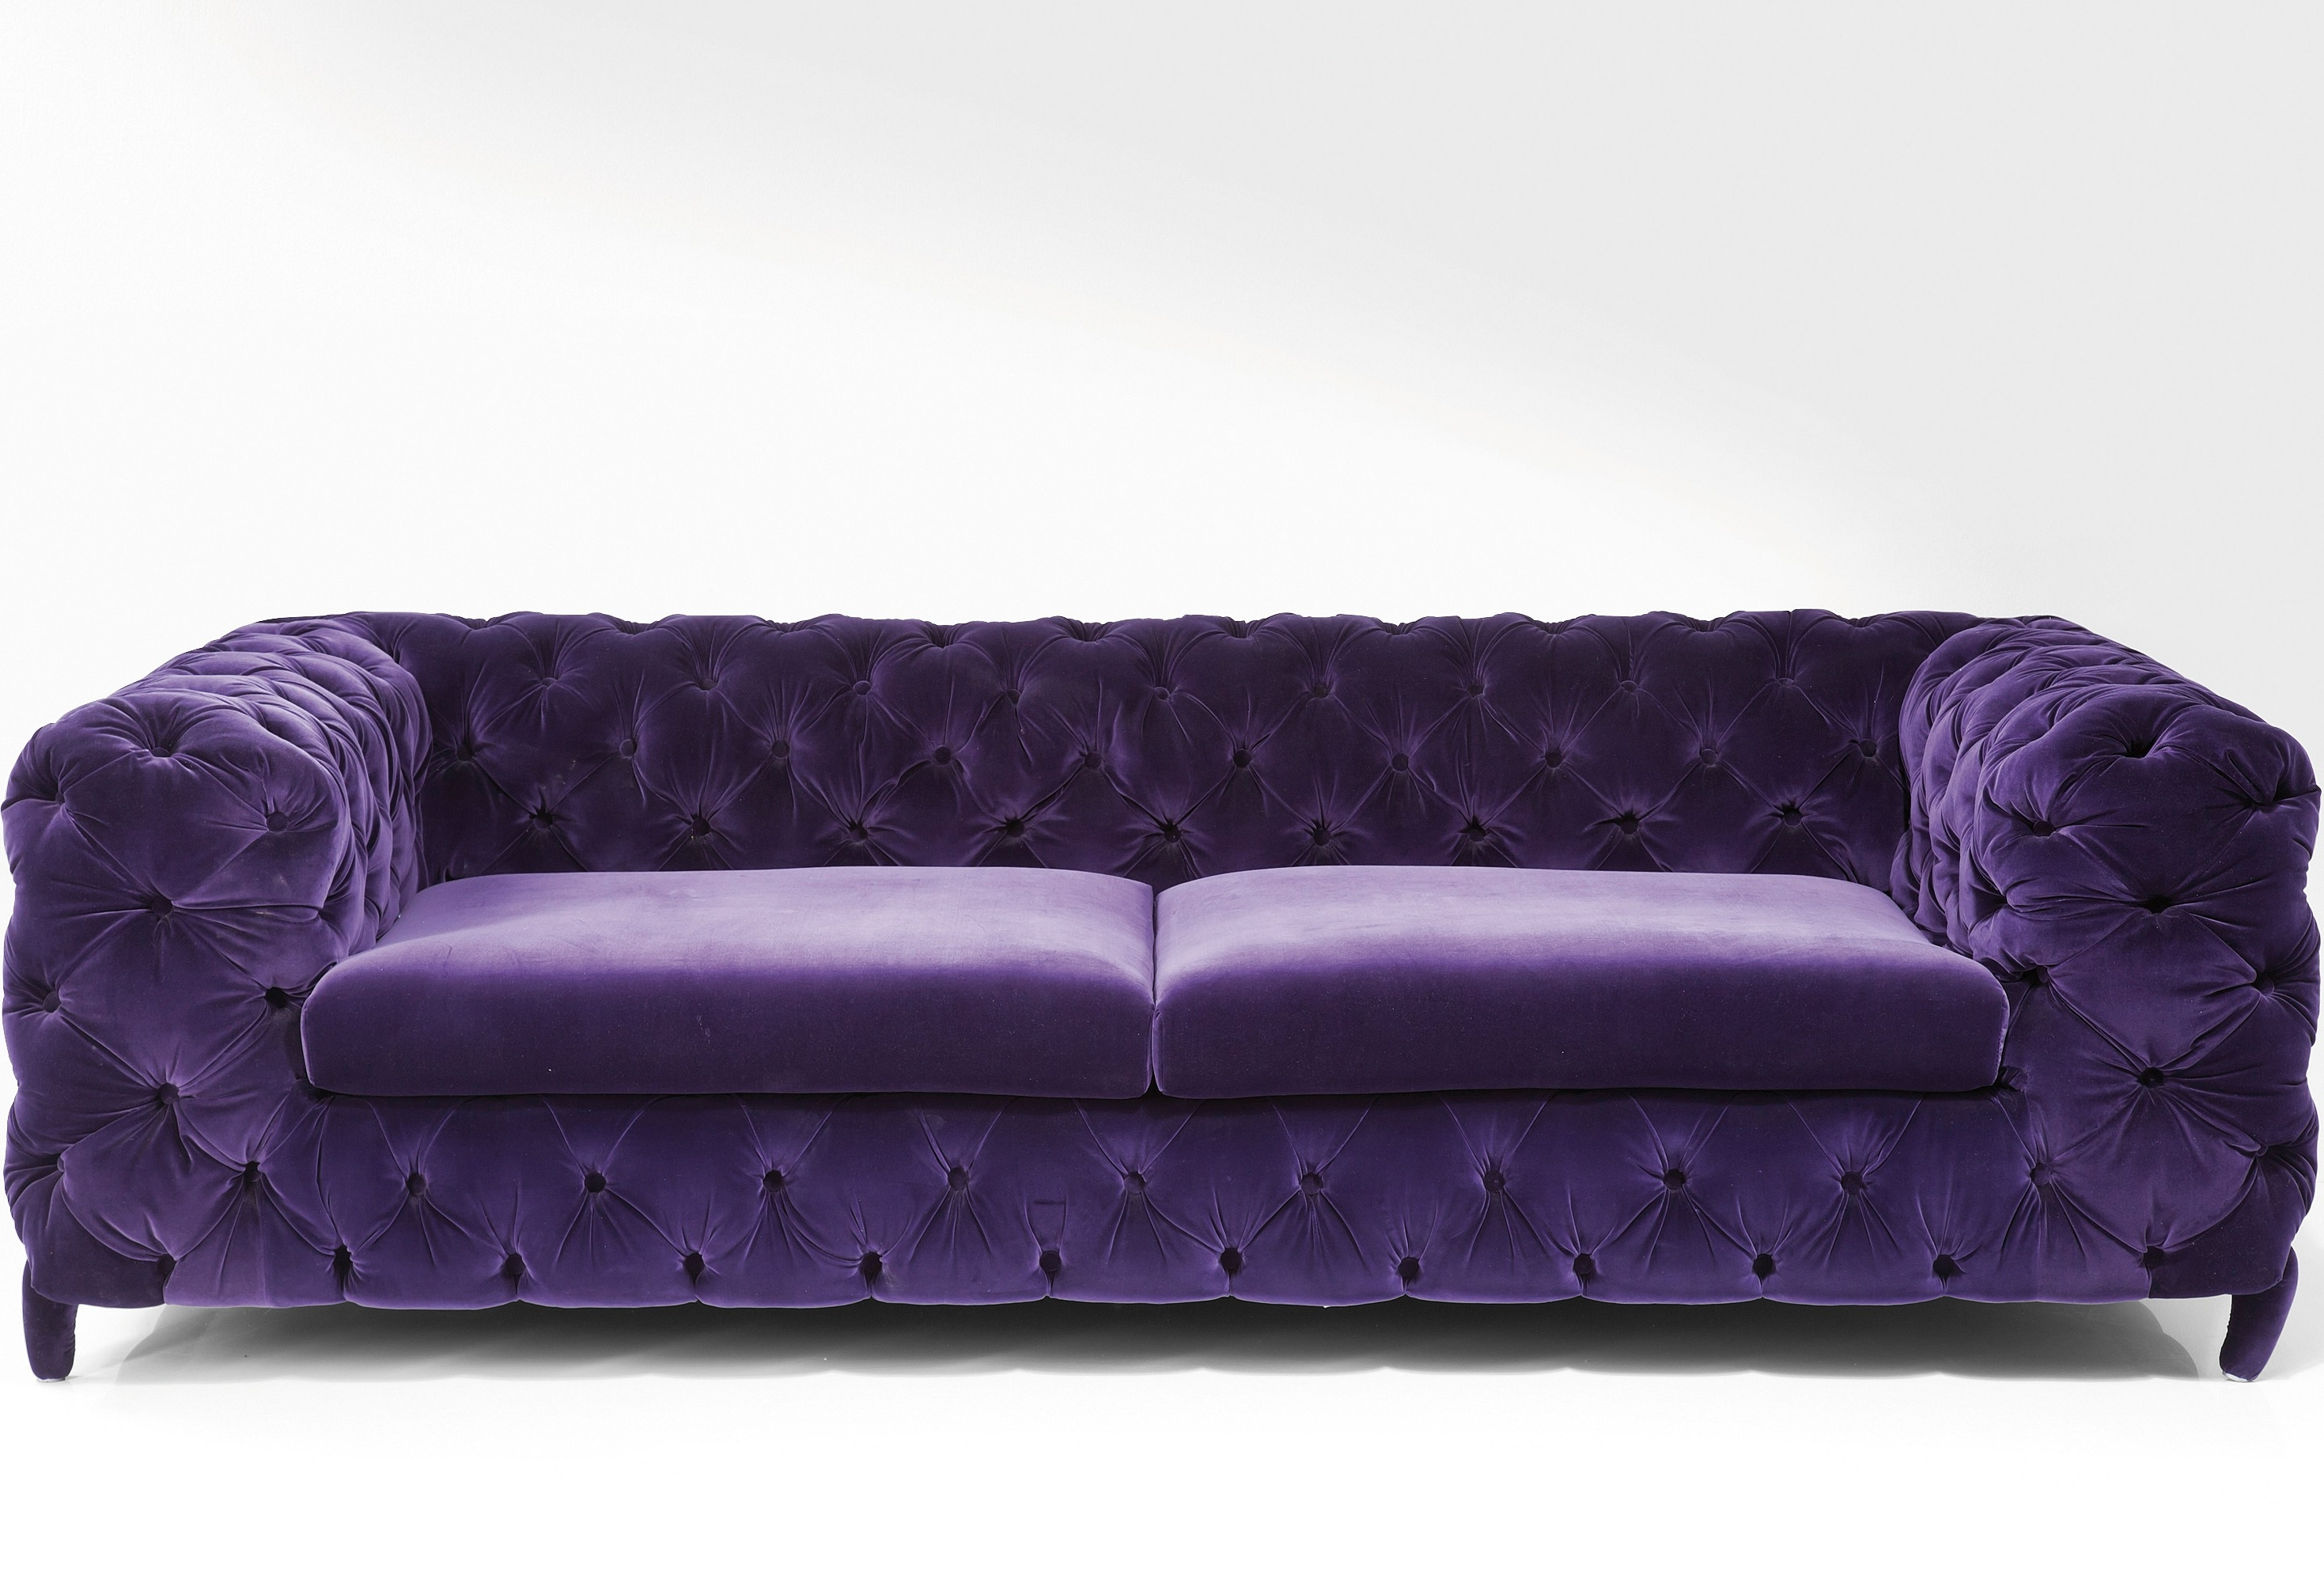 Best And Newest We've Selected 20 Beautiful Velvet Sofas, In A Variety Of Modern Inside Velvet Sofas (View 3 of 20)